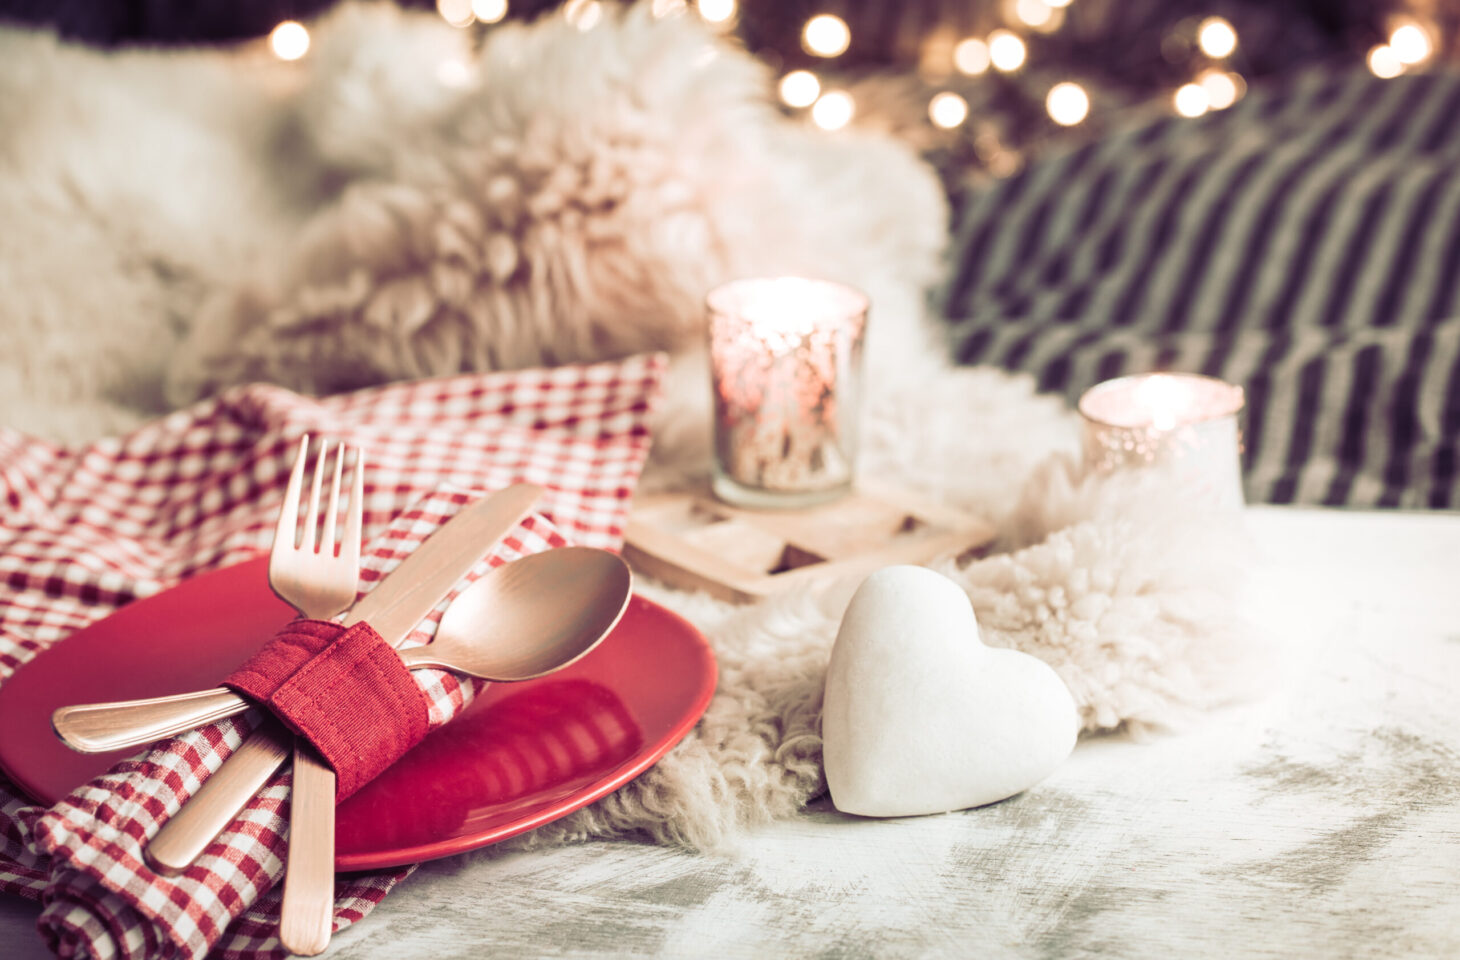 Valentine's Day, festive dinner on a wooden background cutlery in a cozy homely atmosphere